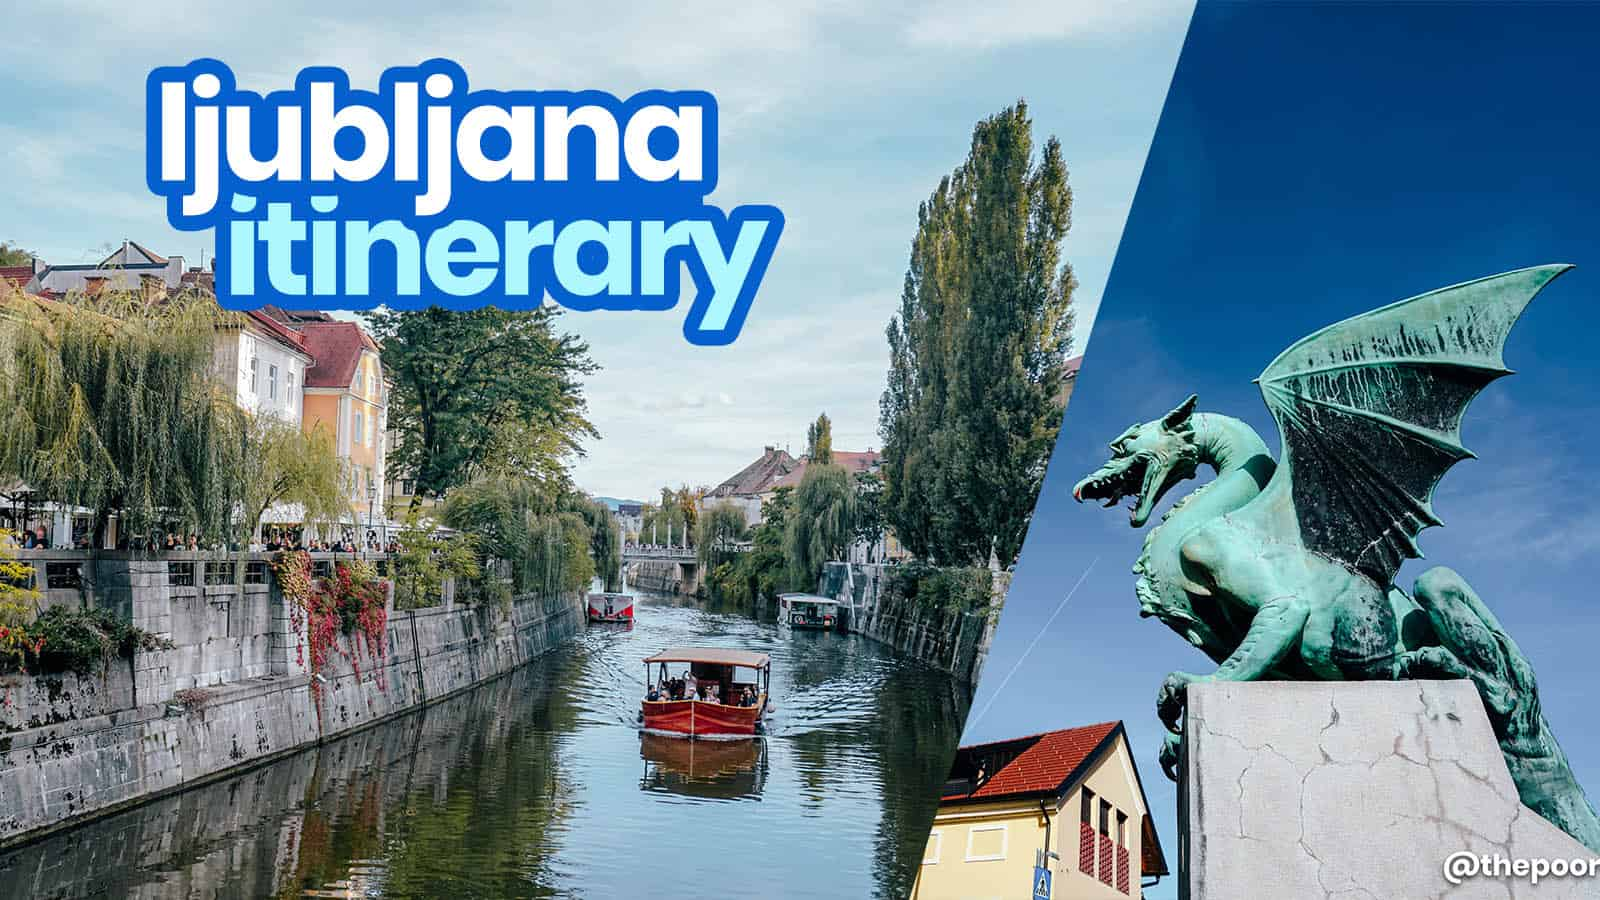 LJUBLJANA ITINERARY: 25 Best Things to Do & Places to Visit